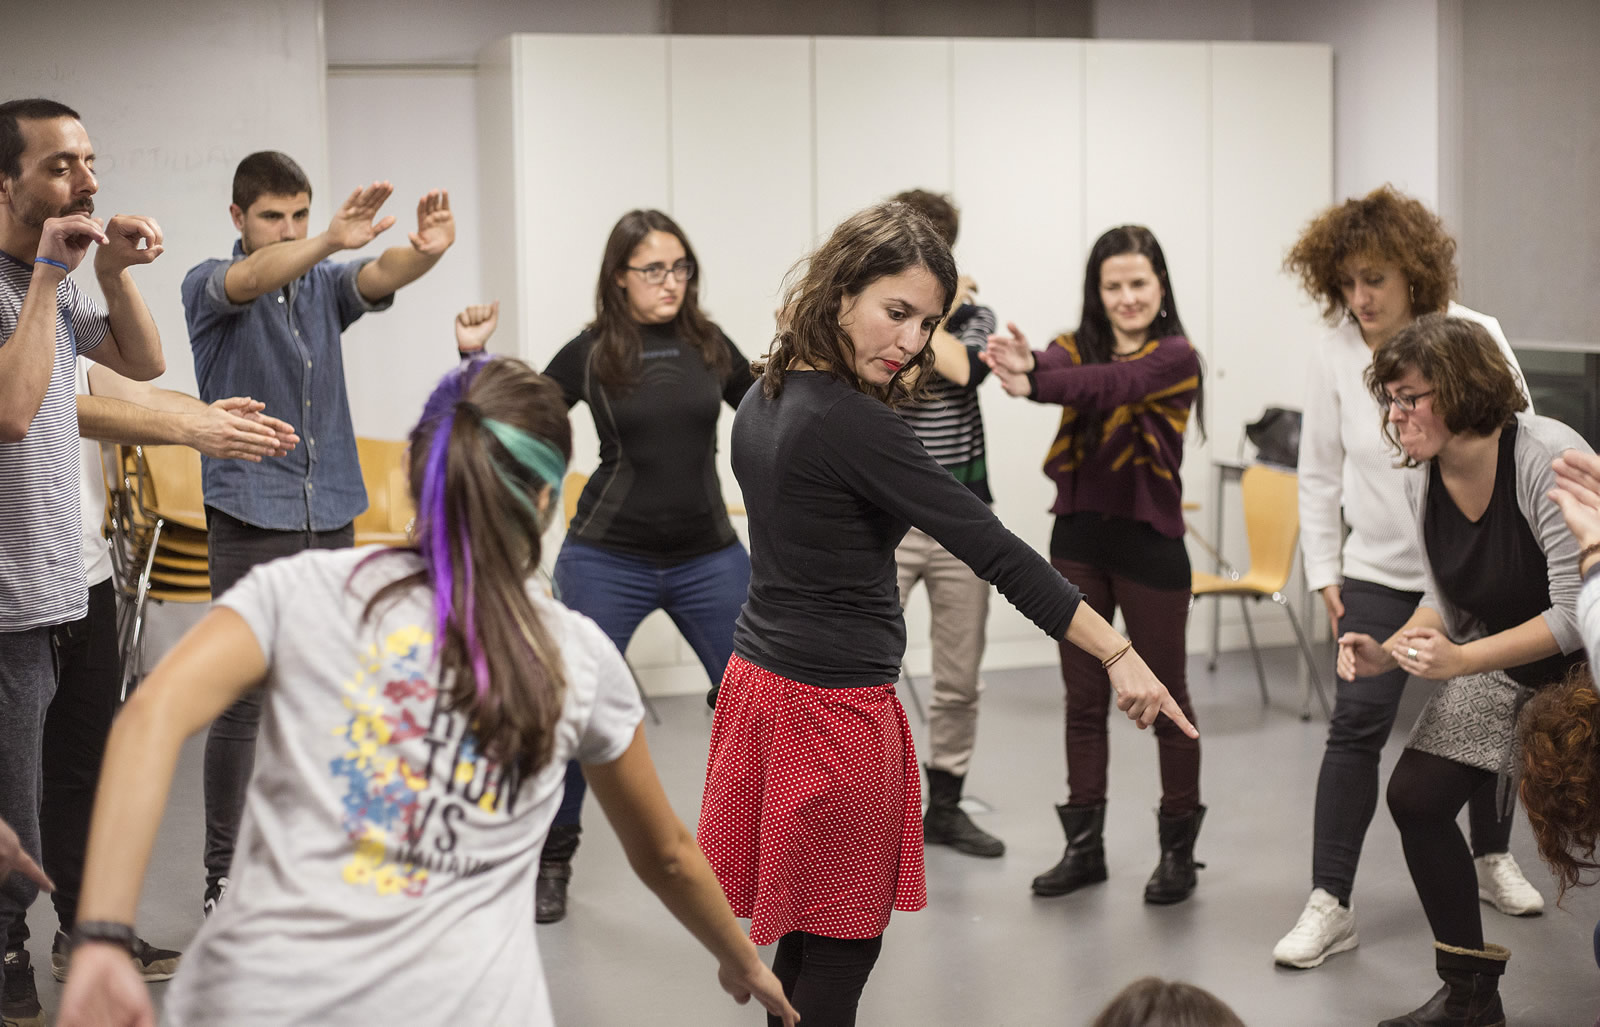 augusto boal helps oppressed individuals through theater workshops Through experiential workshops, theatre performances, and other creative events, we invite people to be more awake and alive as well as empowered to take action toward a more just and joyous life for all people.